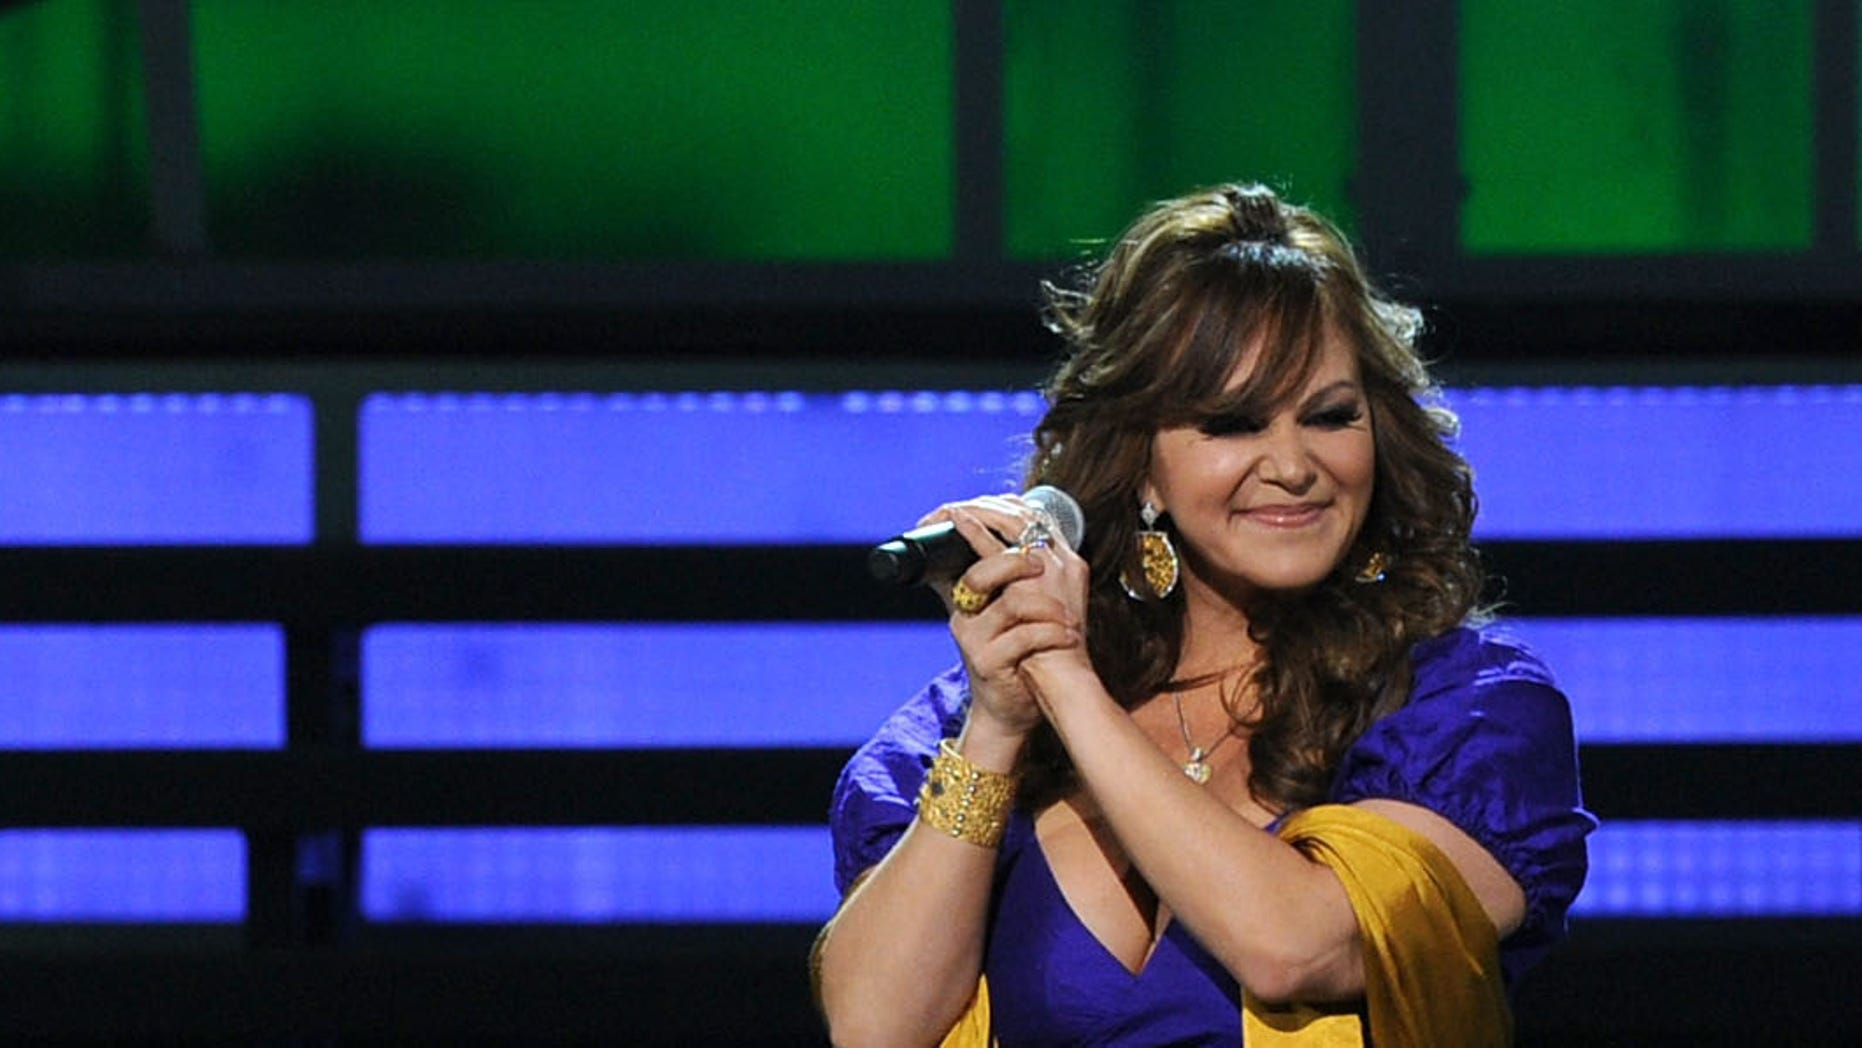 LAS VEGAS - NOVEMBER 11:  Singer Jenni Rivera performs onstage during the 11th annual Latin GRAMMY Awards at the Mandalay Bay Events Center on November 11, 2010 in Las Vegas, Nevada.  (Photo by Kevin Winter/Getty Images for LARAS)